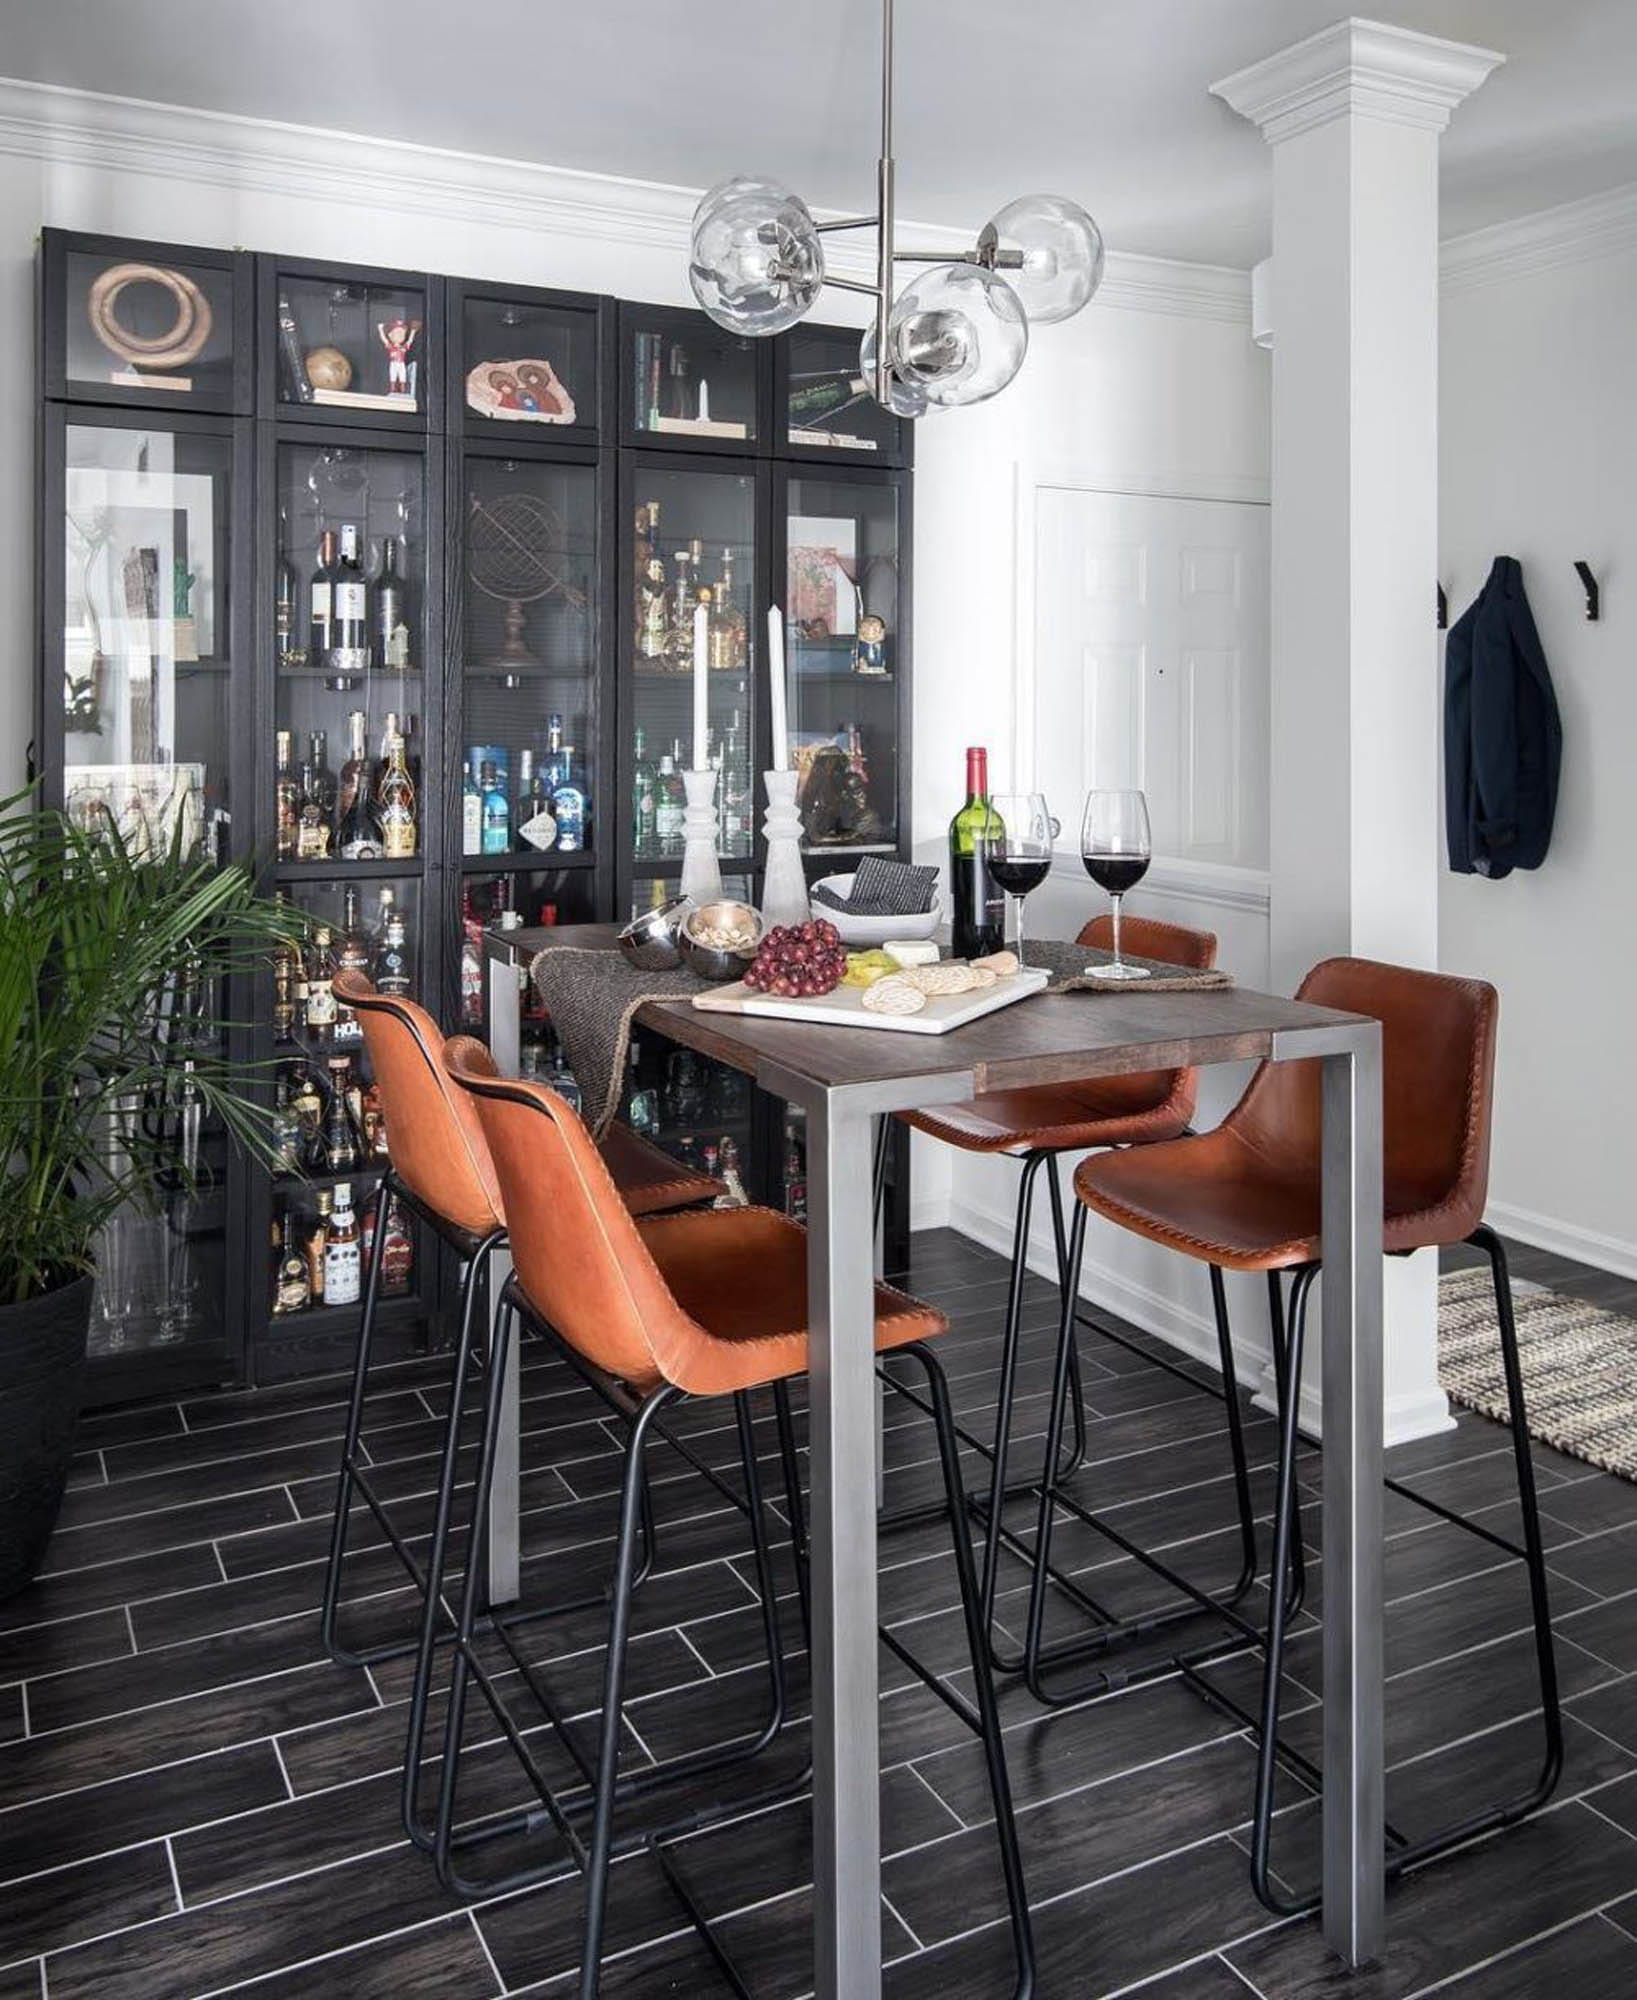 Tiled home bar and table